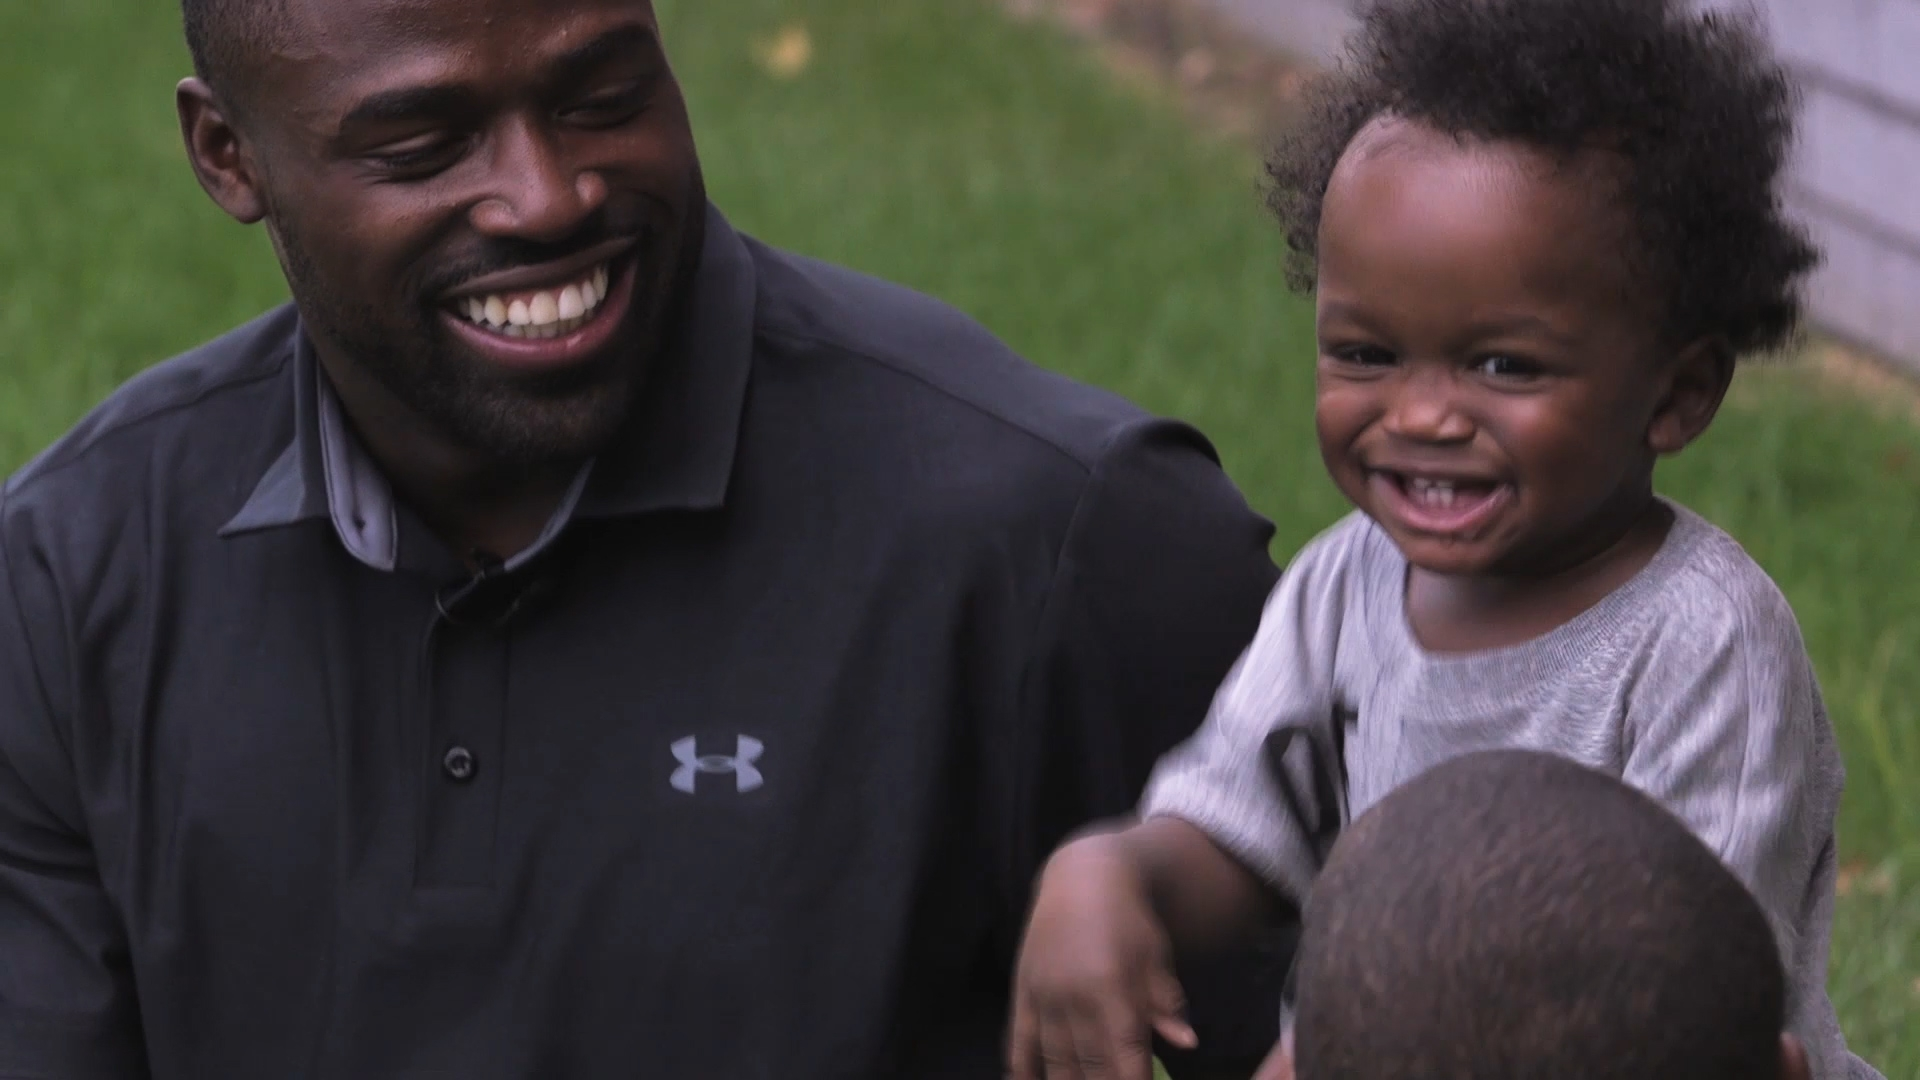 Torrey Smith and his dancing, Instagram-famous sons